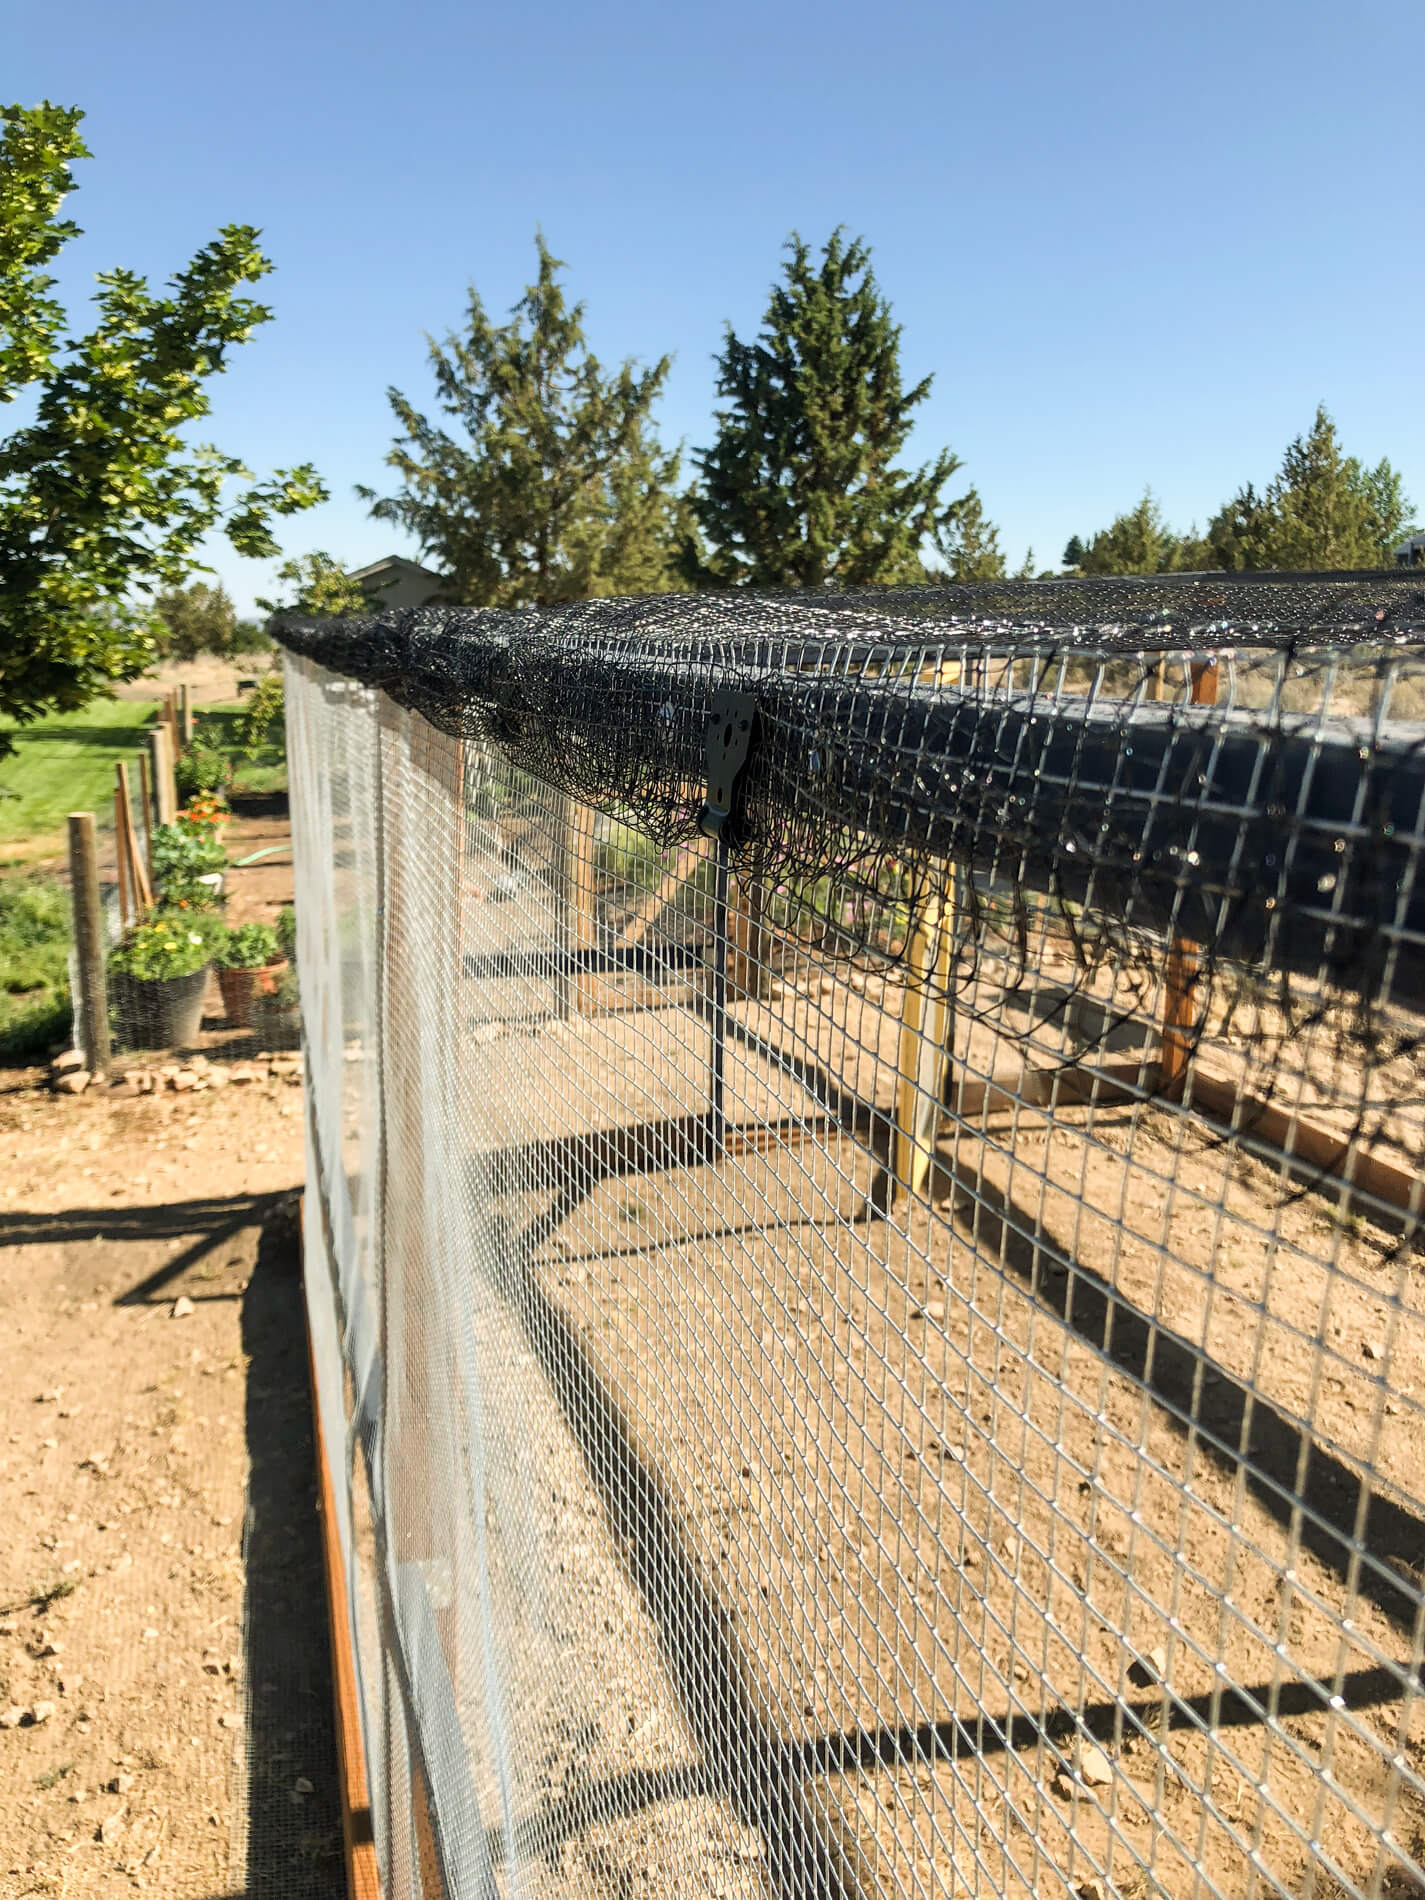 poultry-netting-on-roof-of-chicken-run